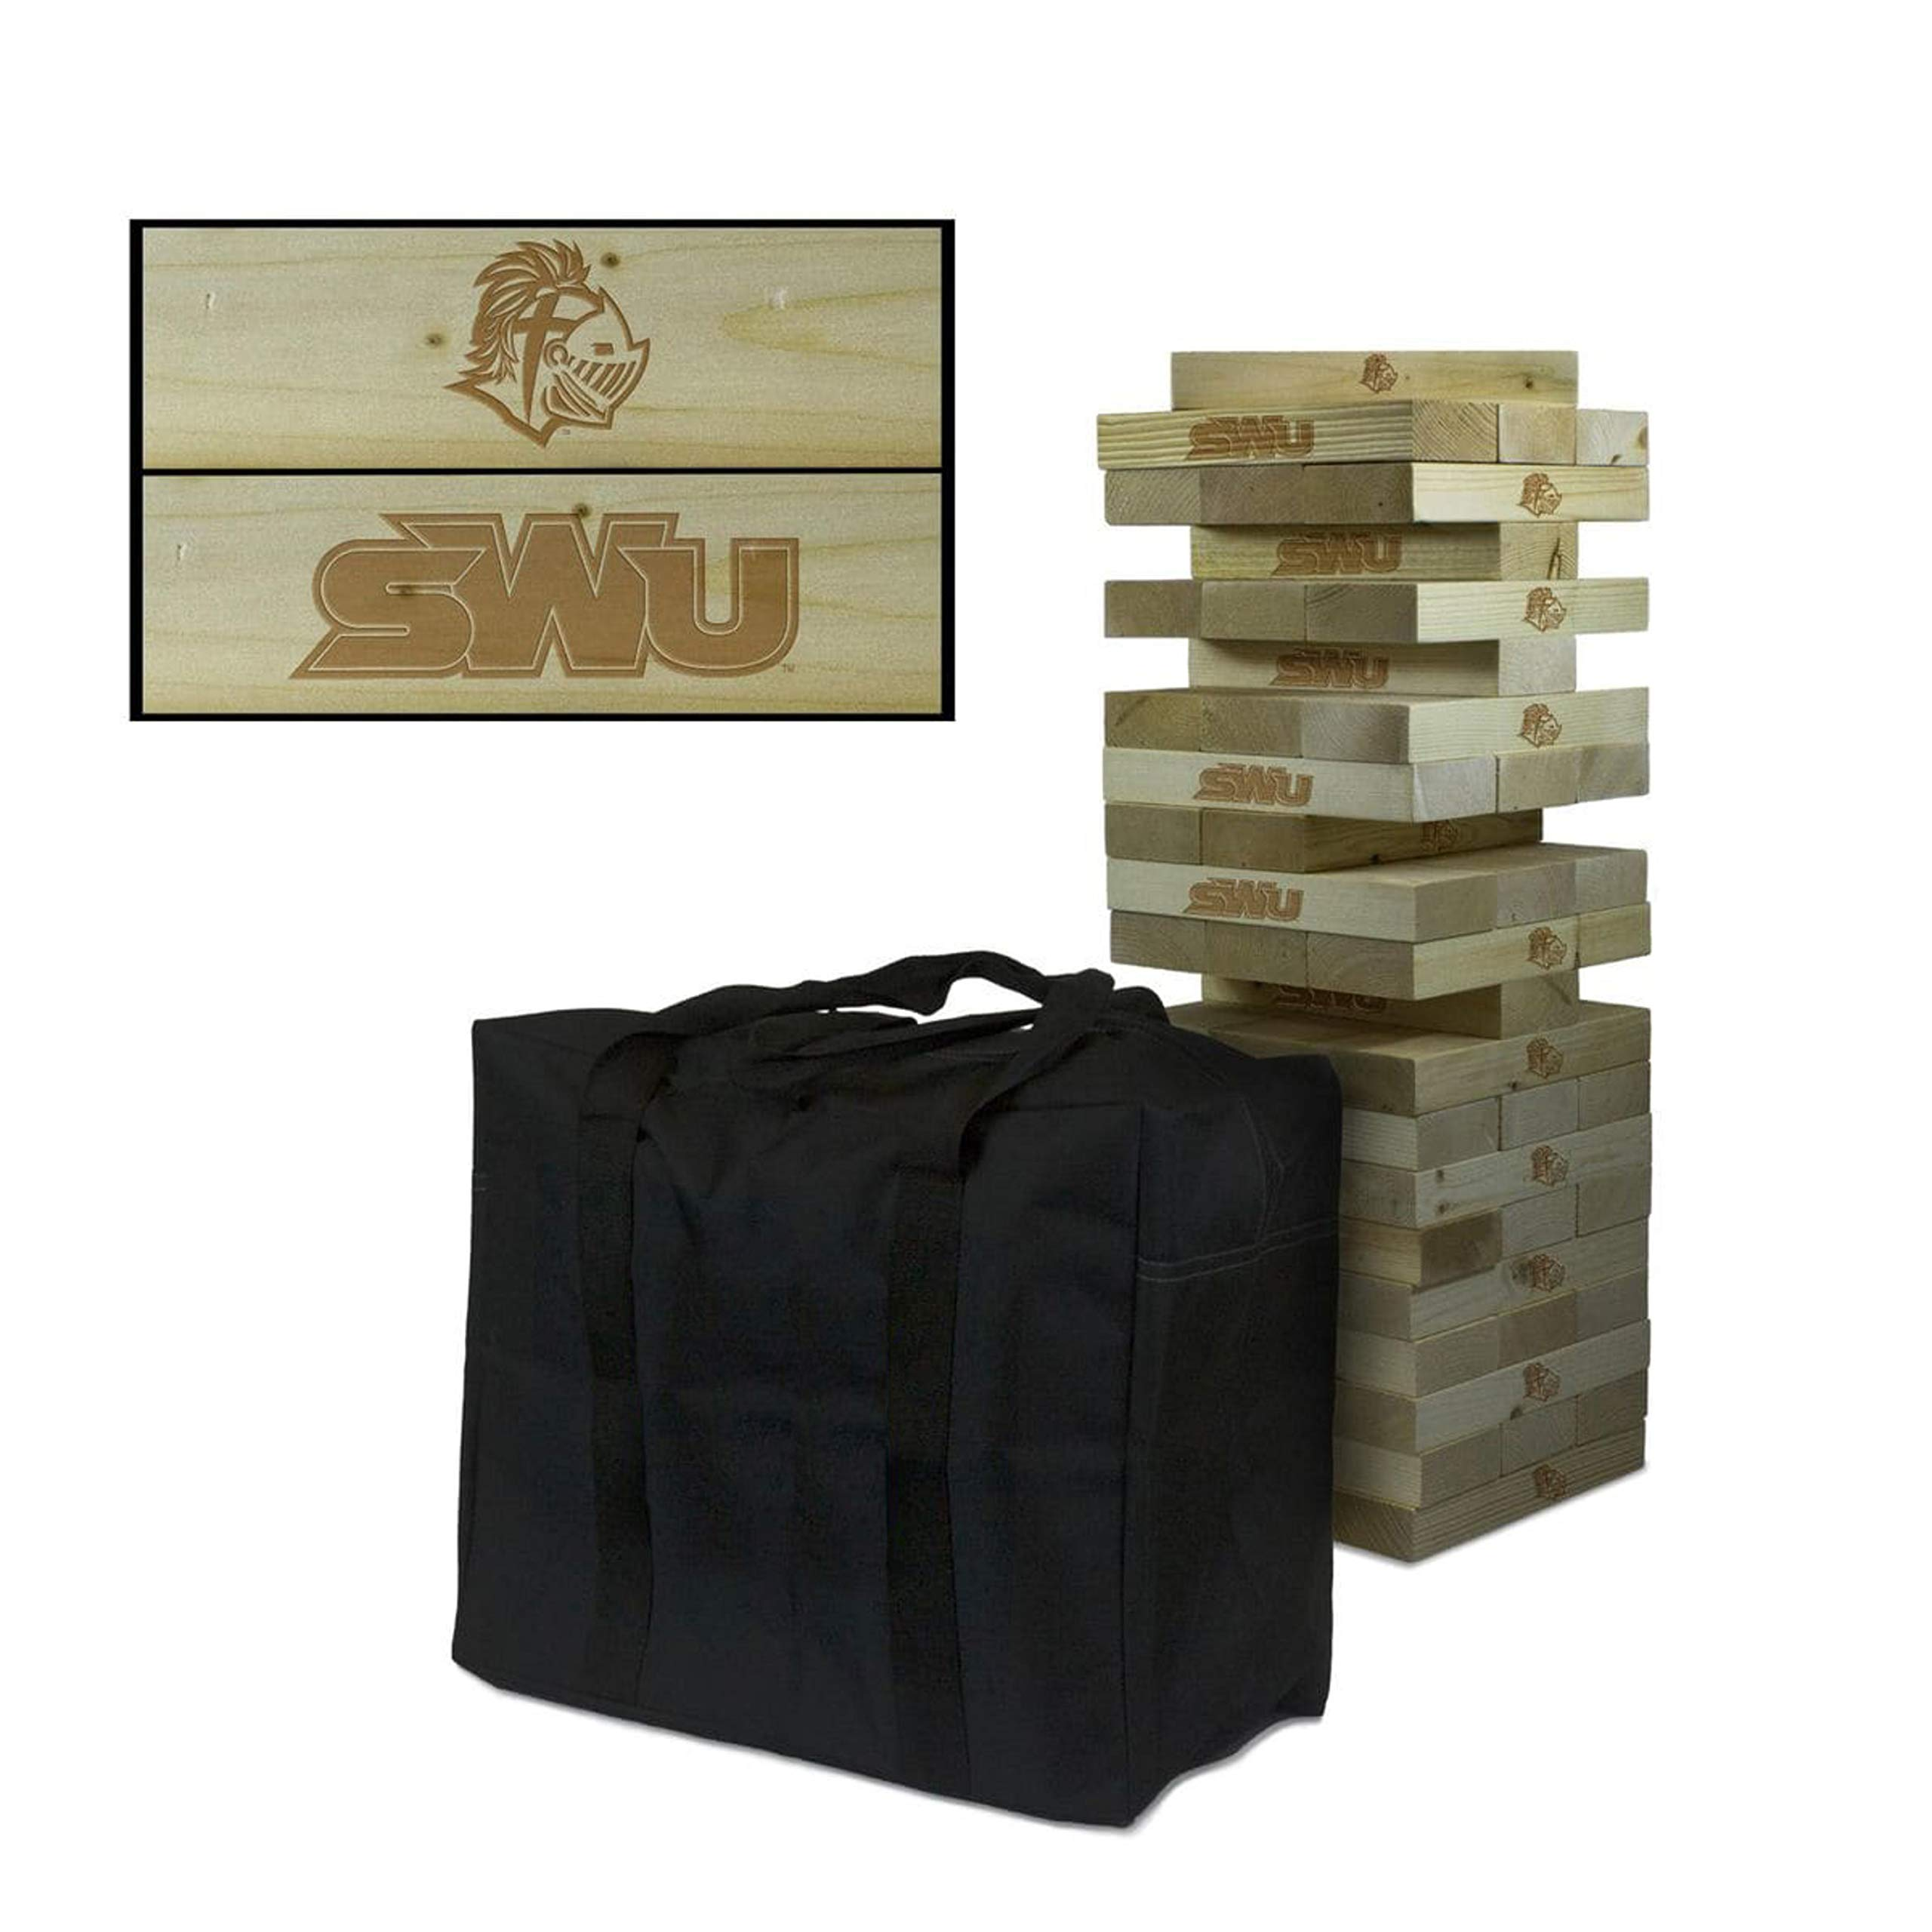 Victory Tailgate NCAA Giant Wooden Tumble Tower Game Set - Southern Wesleyan Warriors by Victory Tailgate